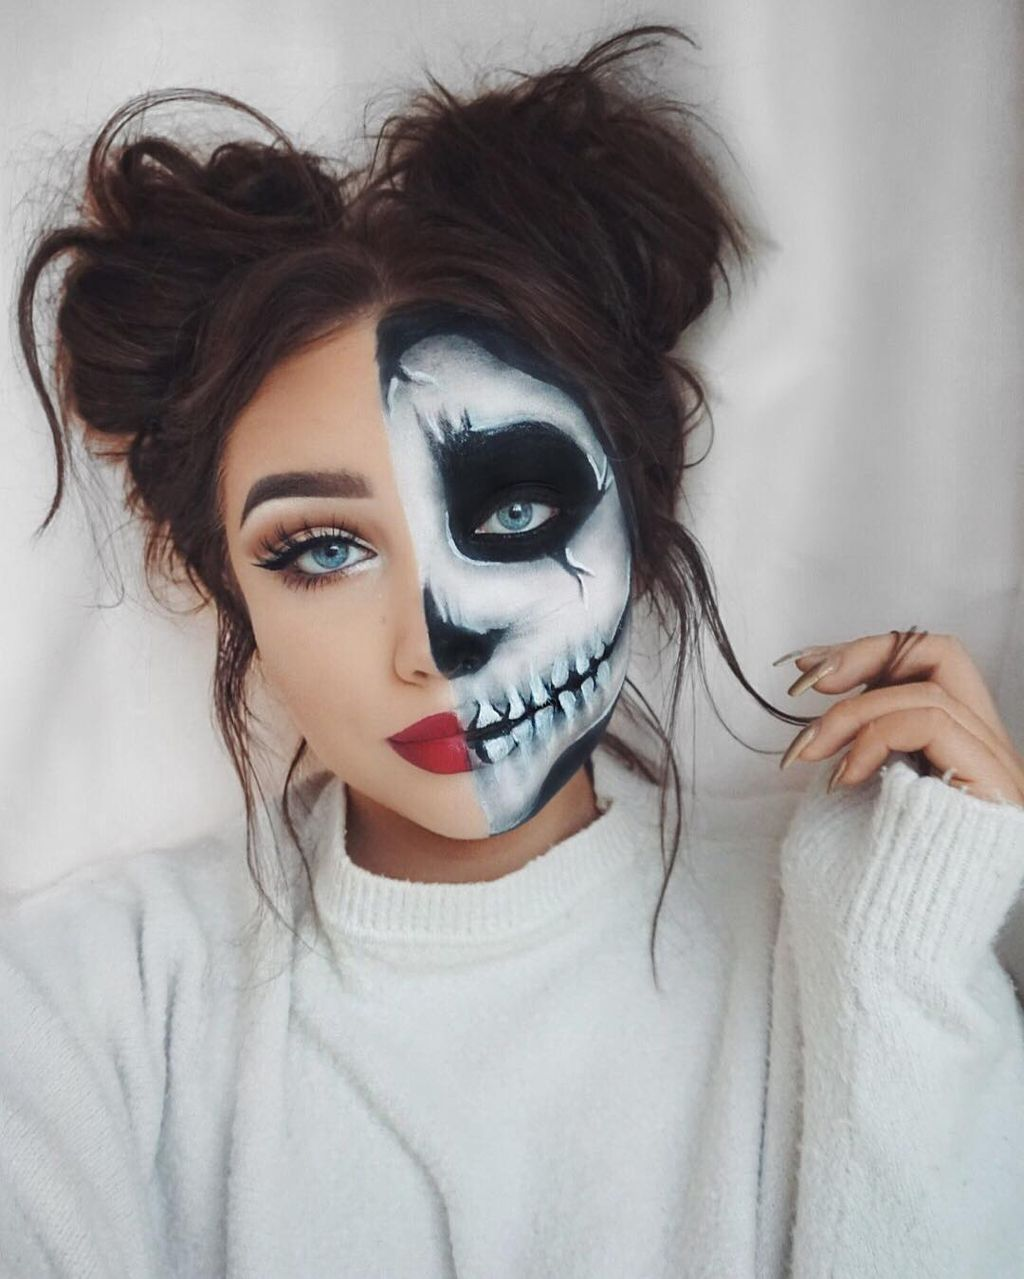 71 inspiring halloween makeup ideas to makes you look creepy but cute halloween makeup makeup. Black Bedroom Furniture Sets. Home Design Ideas